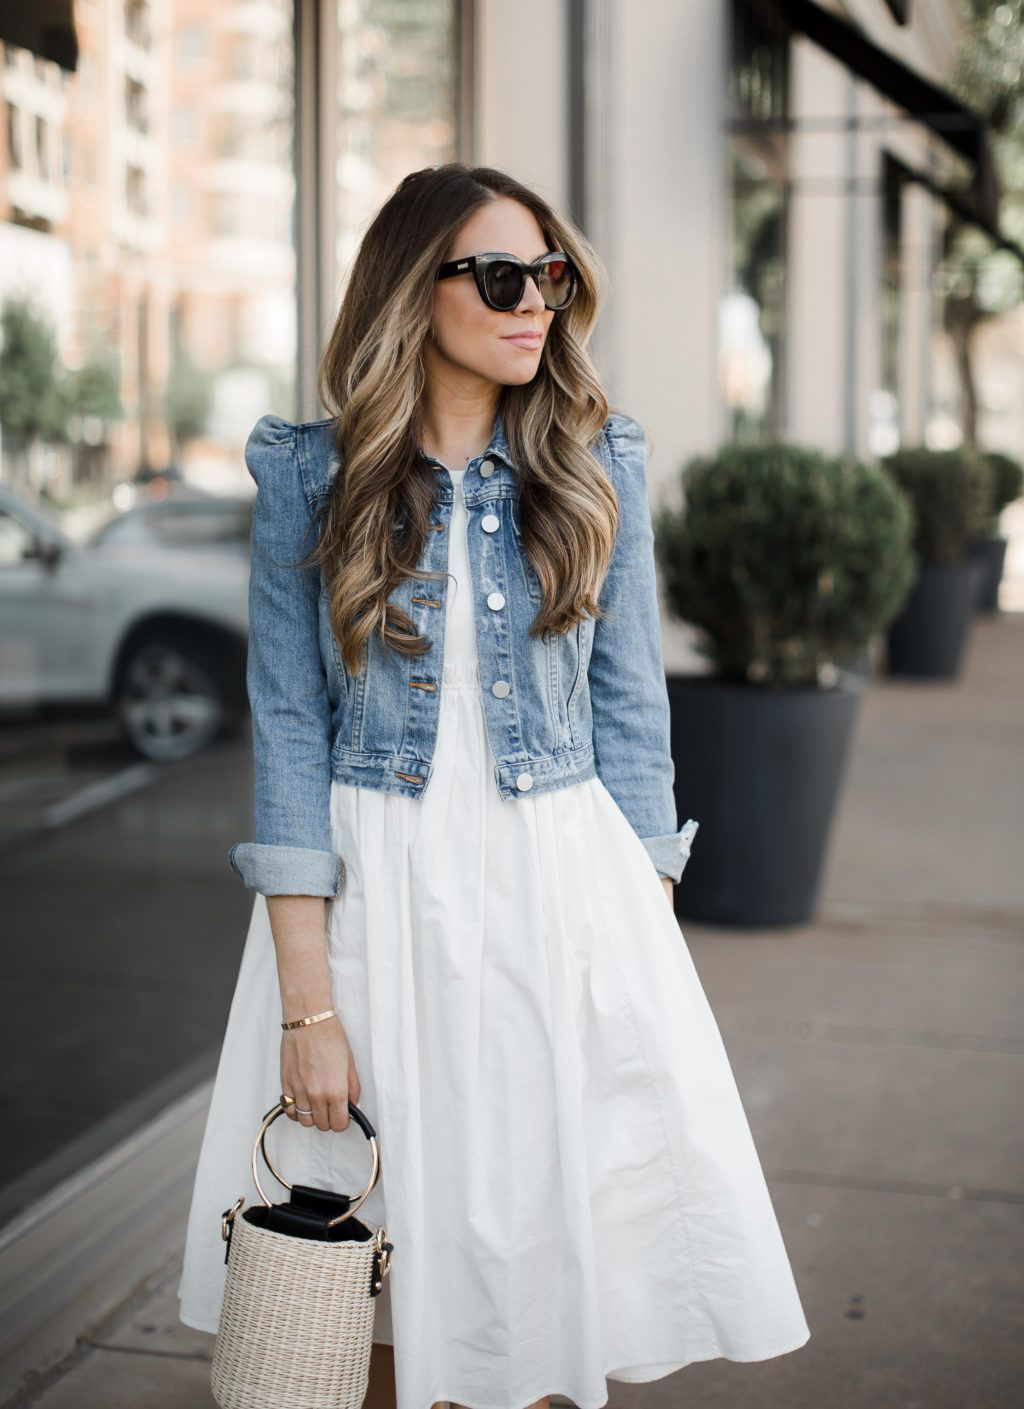 White Dresses for Summer under $150